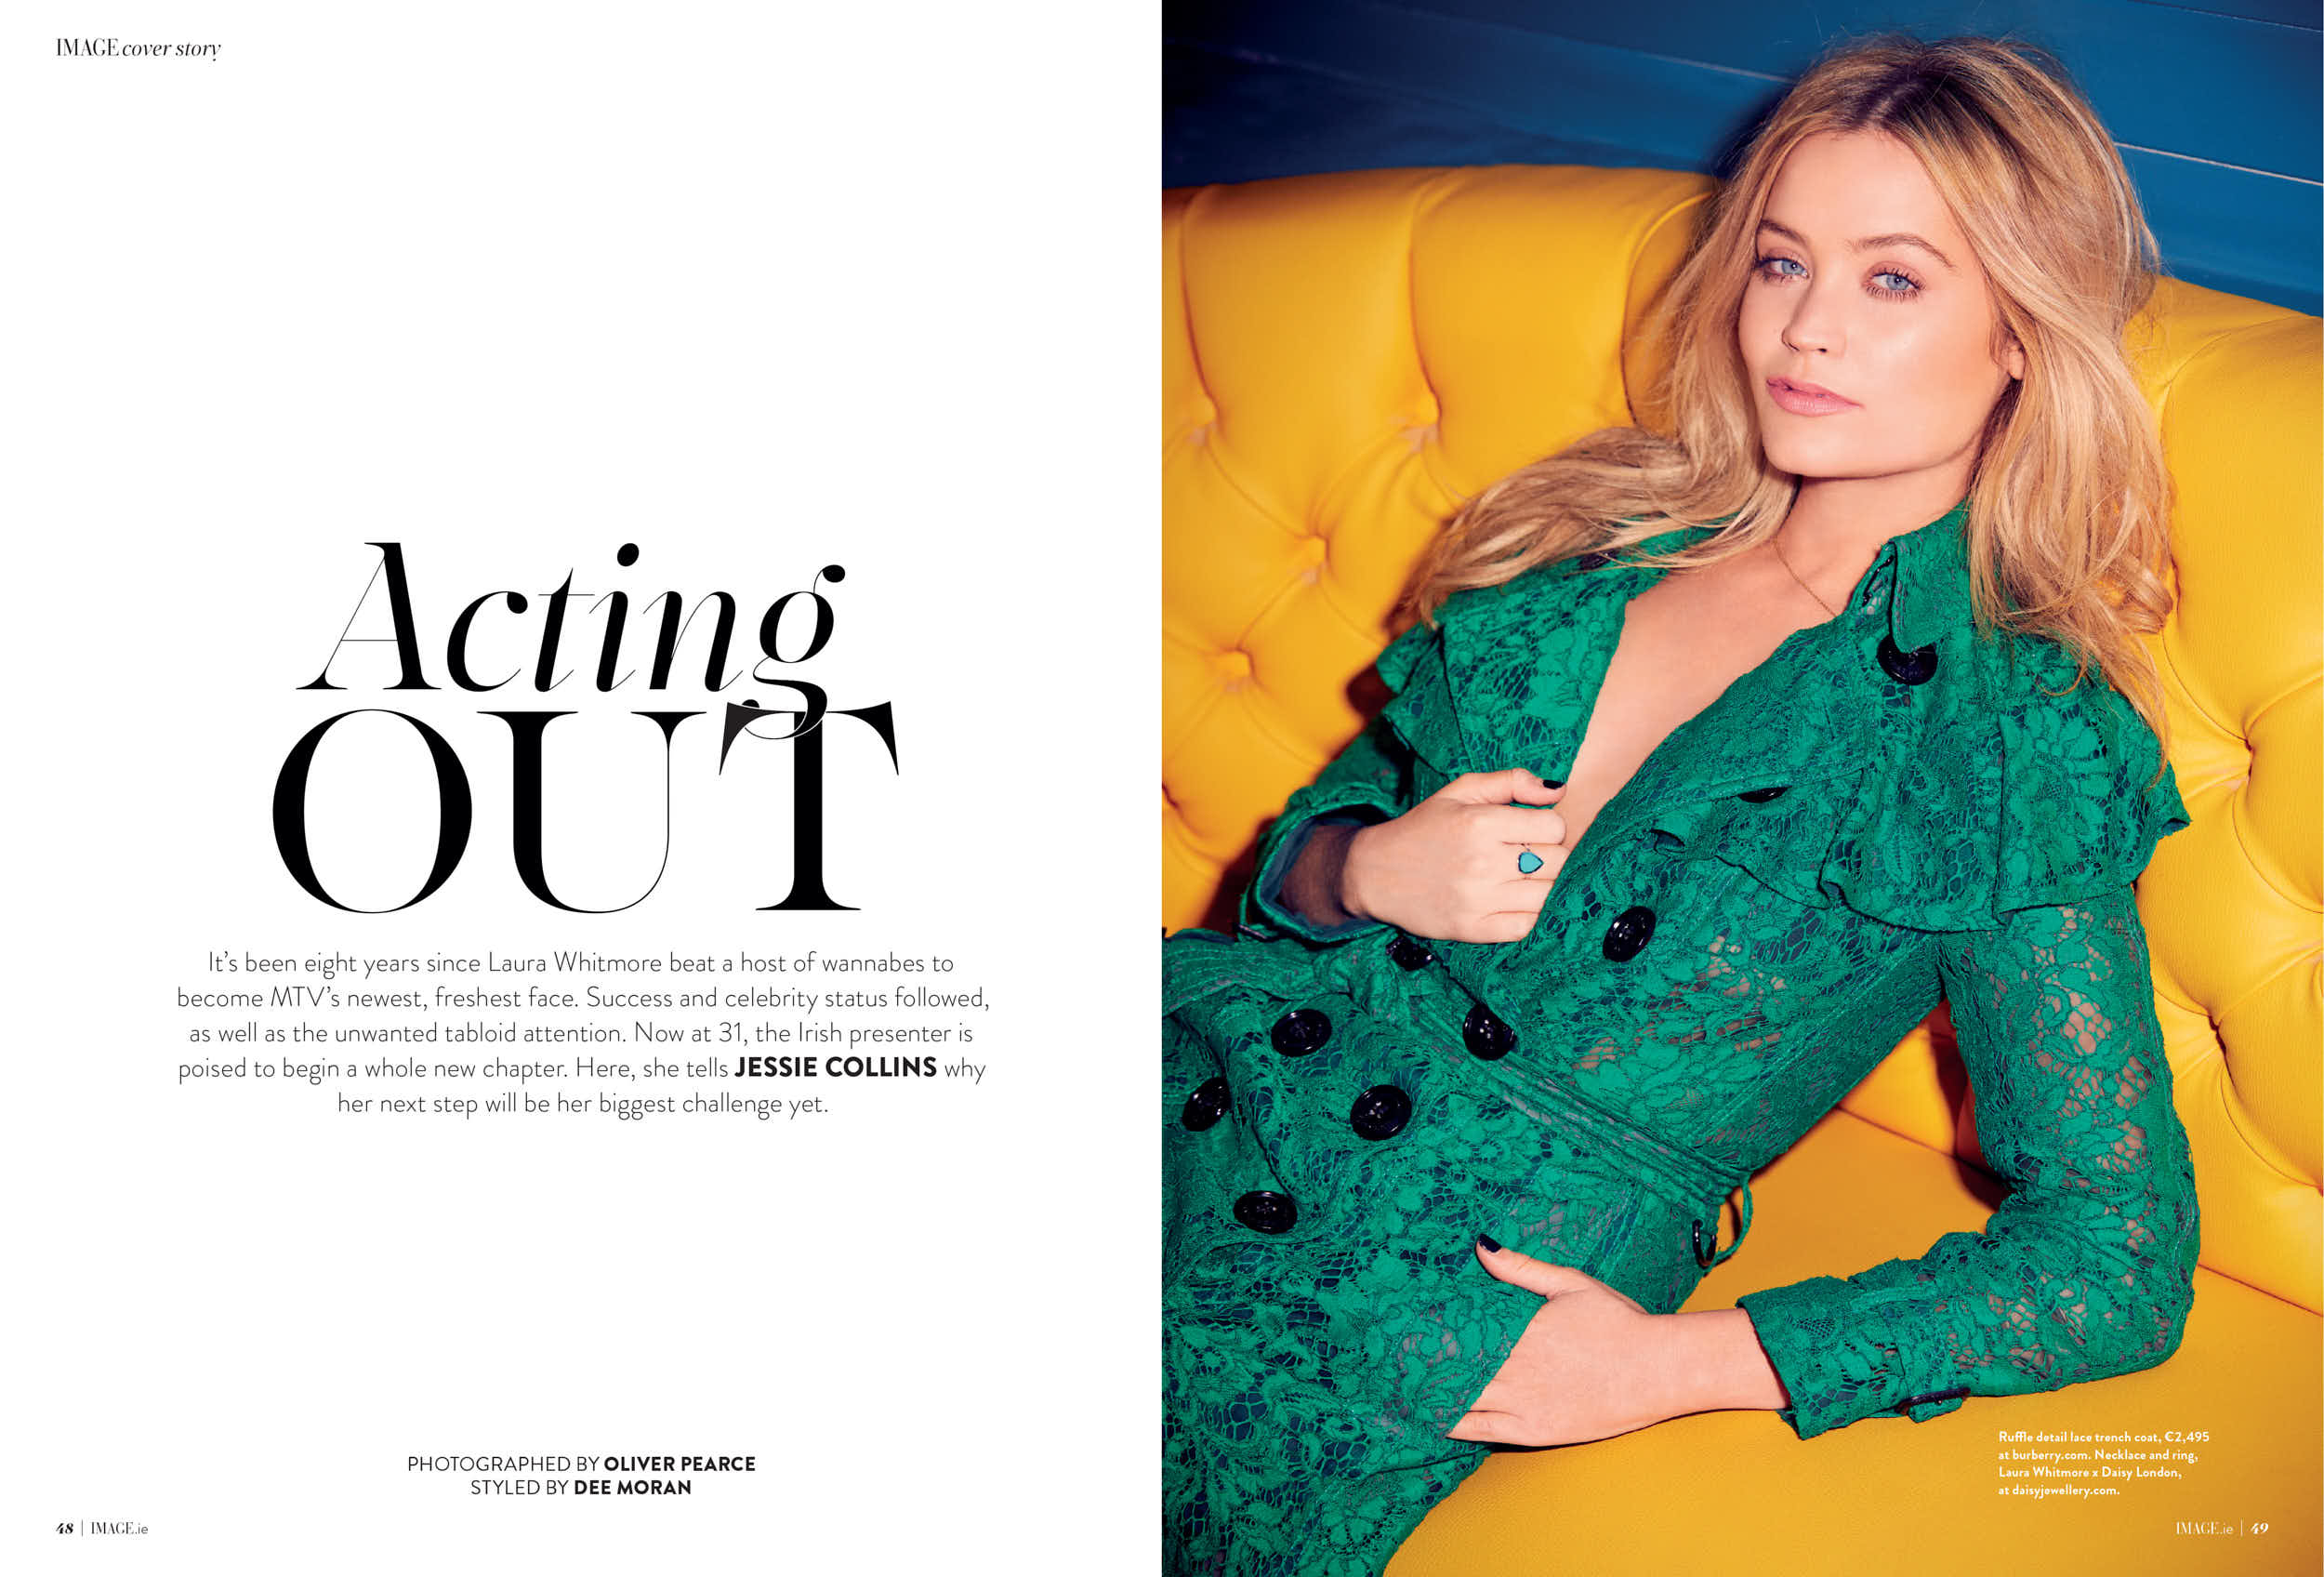 Laura Whitmore - Actor